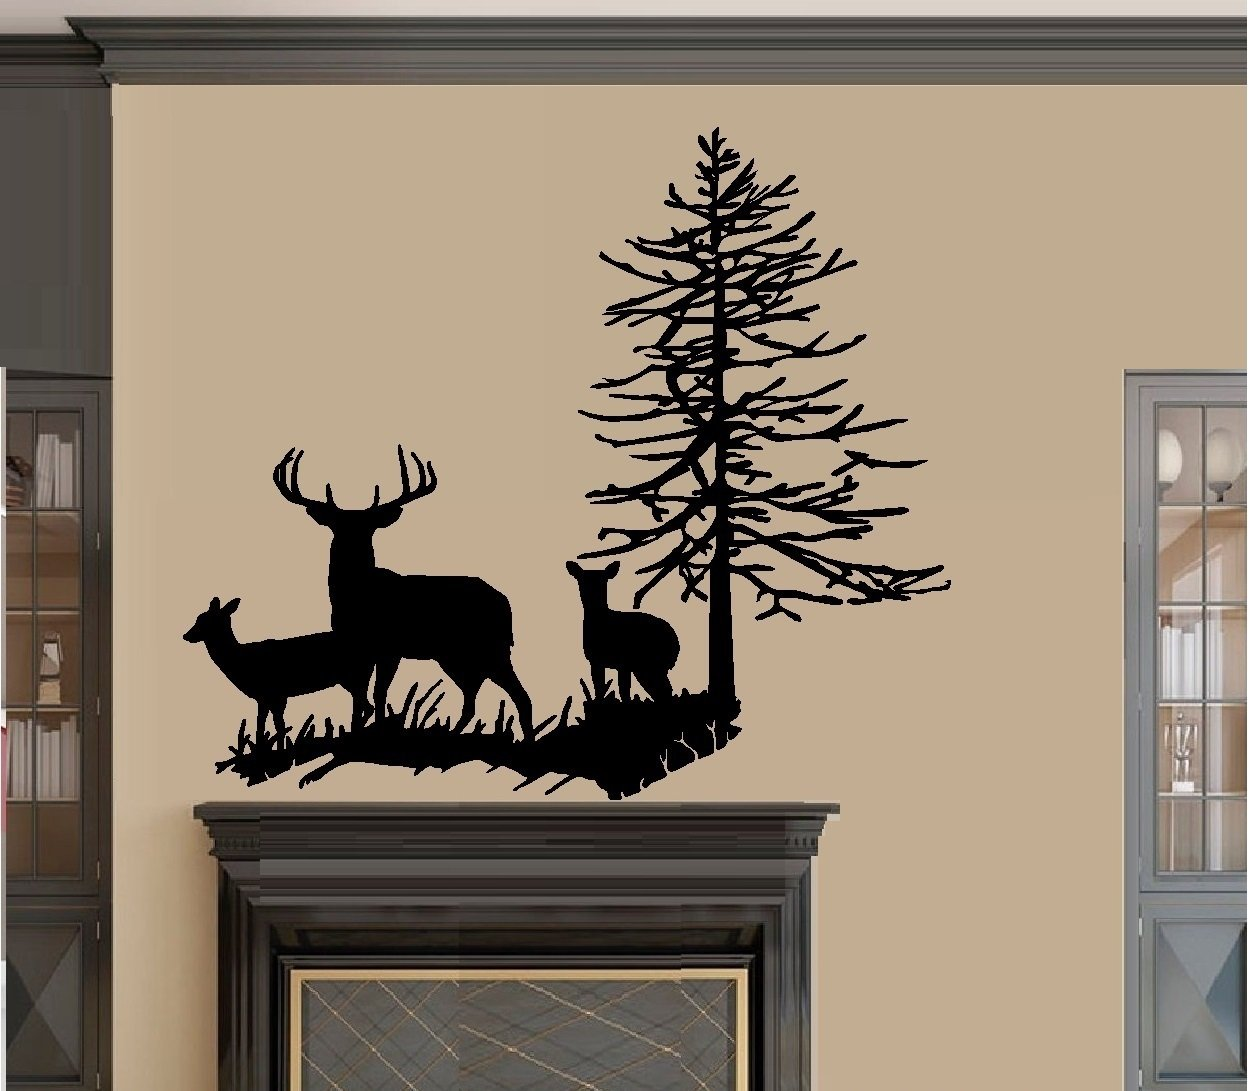 Amazon deer family with tree wall decal large 22 x 27 amazon deer family with tree wall decal large 22 x 27 home kitchen amipublicfo Choice Image